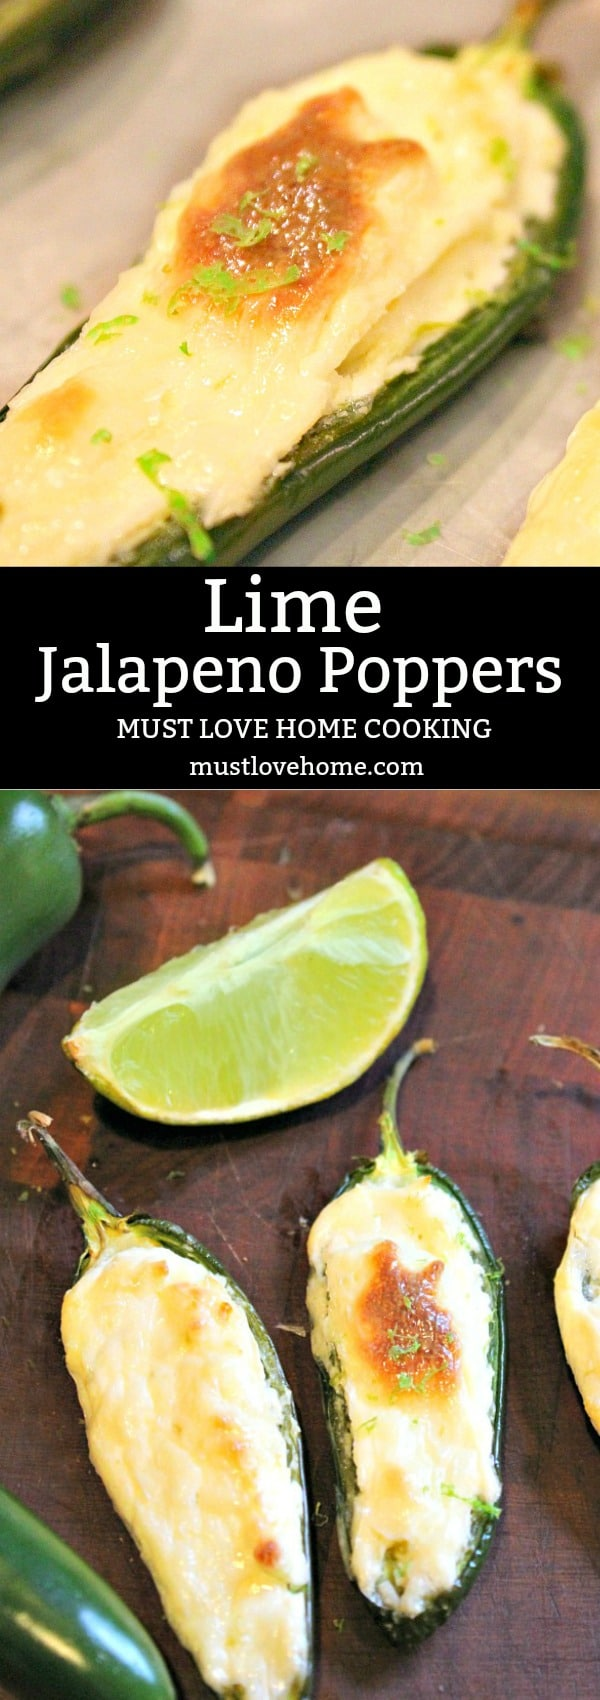 Lime Jalapeno Poppers - baked rather than deep fried with a pop of lime.